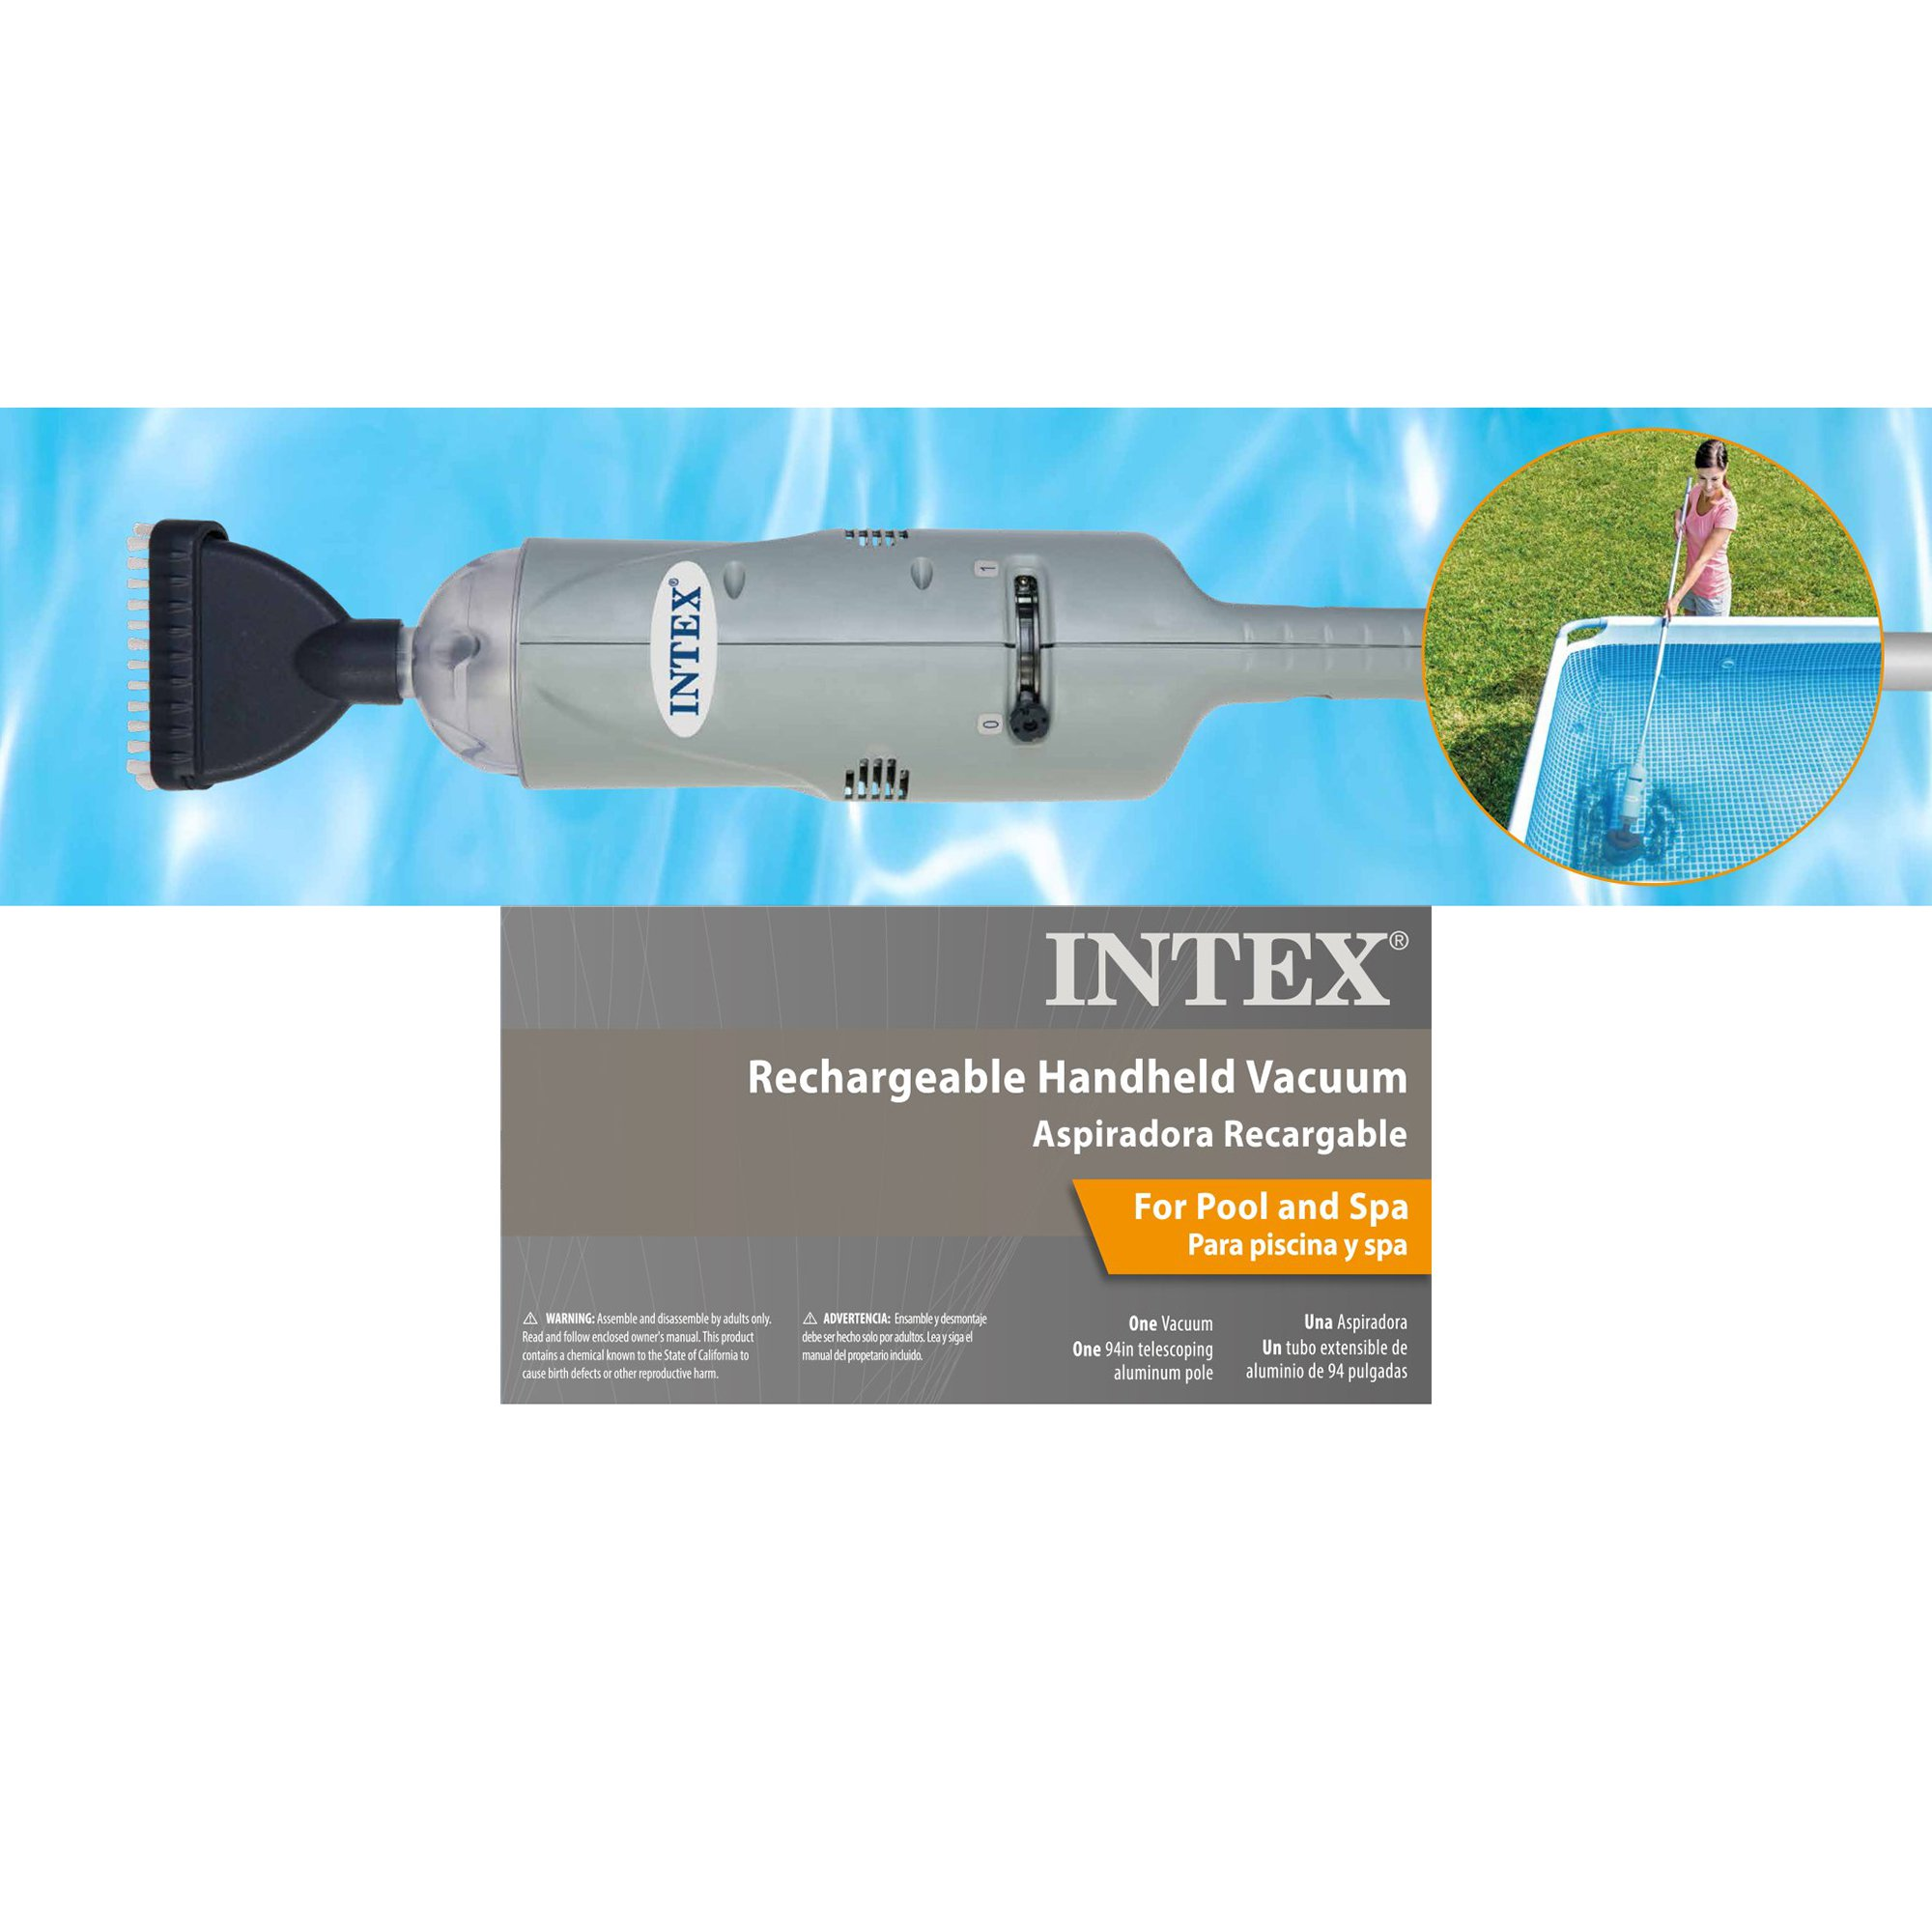 Intex cleaning above ground swimming pool rechargeable handheld intex cleaning above ground swimming pool rechargeable handheld vacuum 28620e walmart fandeluxe Gallery